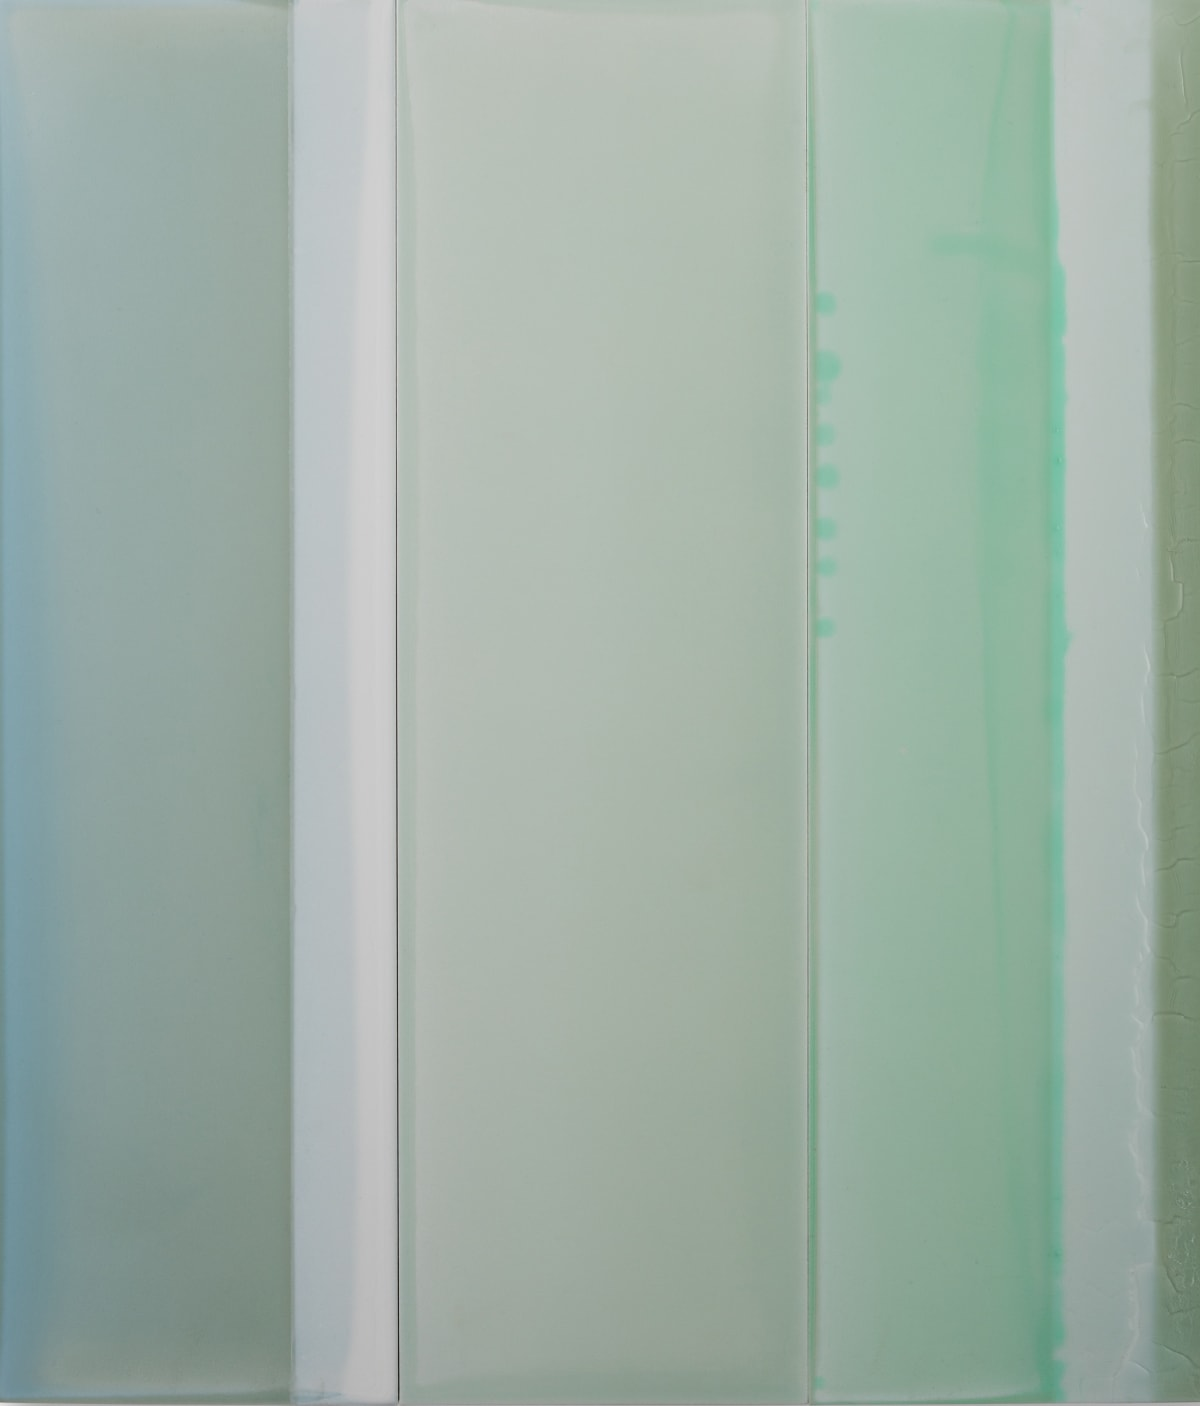 """Susan English's """"Thirds No. 1"""" done with tinted polymer on panel. This artwork is a simple vertical design done in shades of green, though it looks more muted. If the work was seen from a viewer's perspective, it resembles wall or floor tiles."""